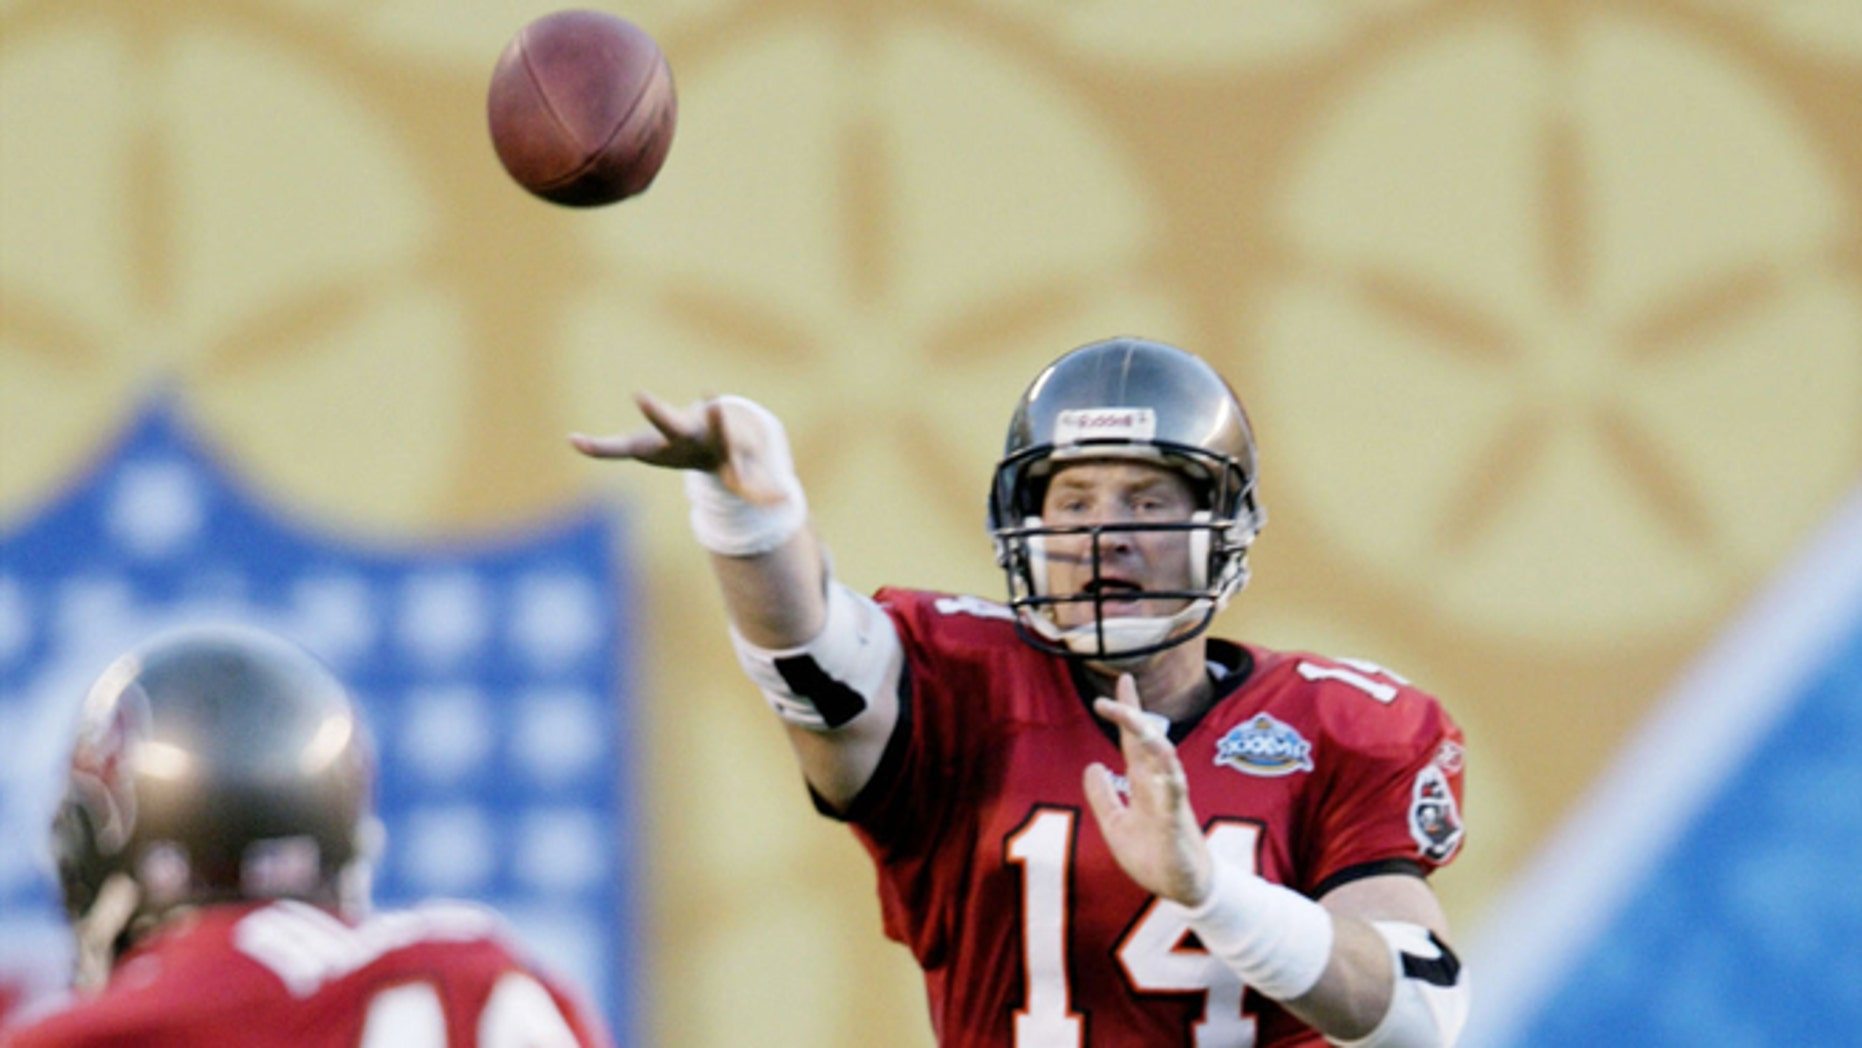 Jan. 26, 2003: Tampa Bay Buccaneers' quarterback Brad Johnson (14) throws to fullback Mike Alstott (40) for a first down in the second quarter of Super Bowl XXXVII, in San Diego.